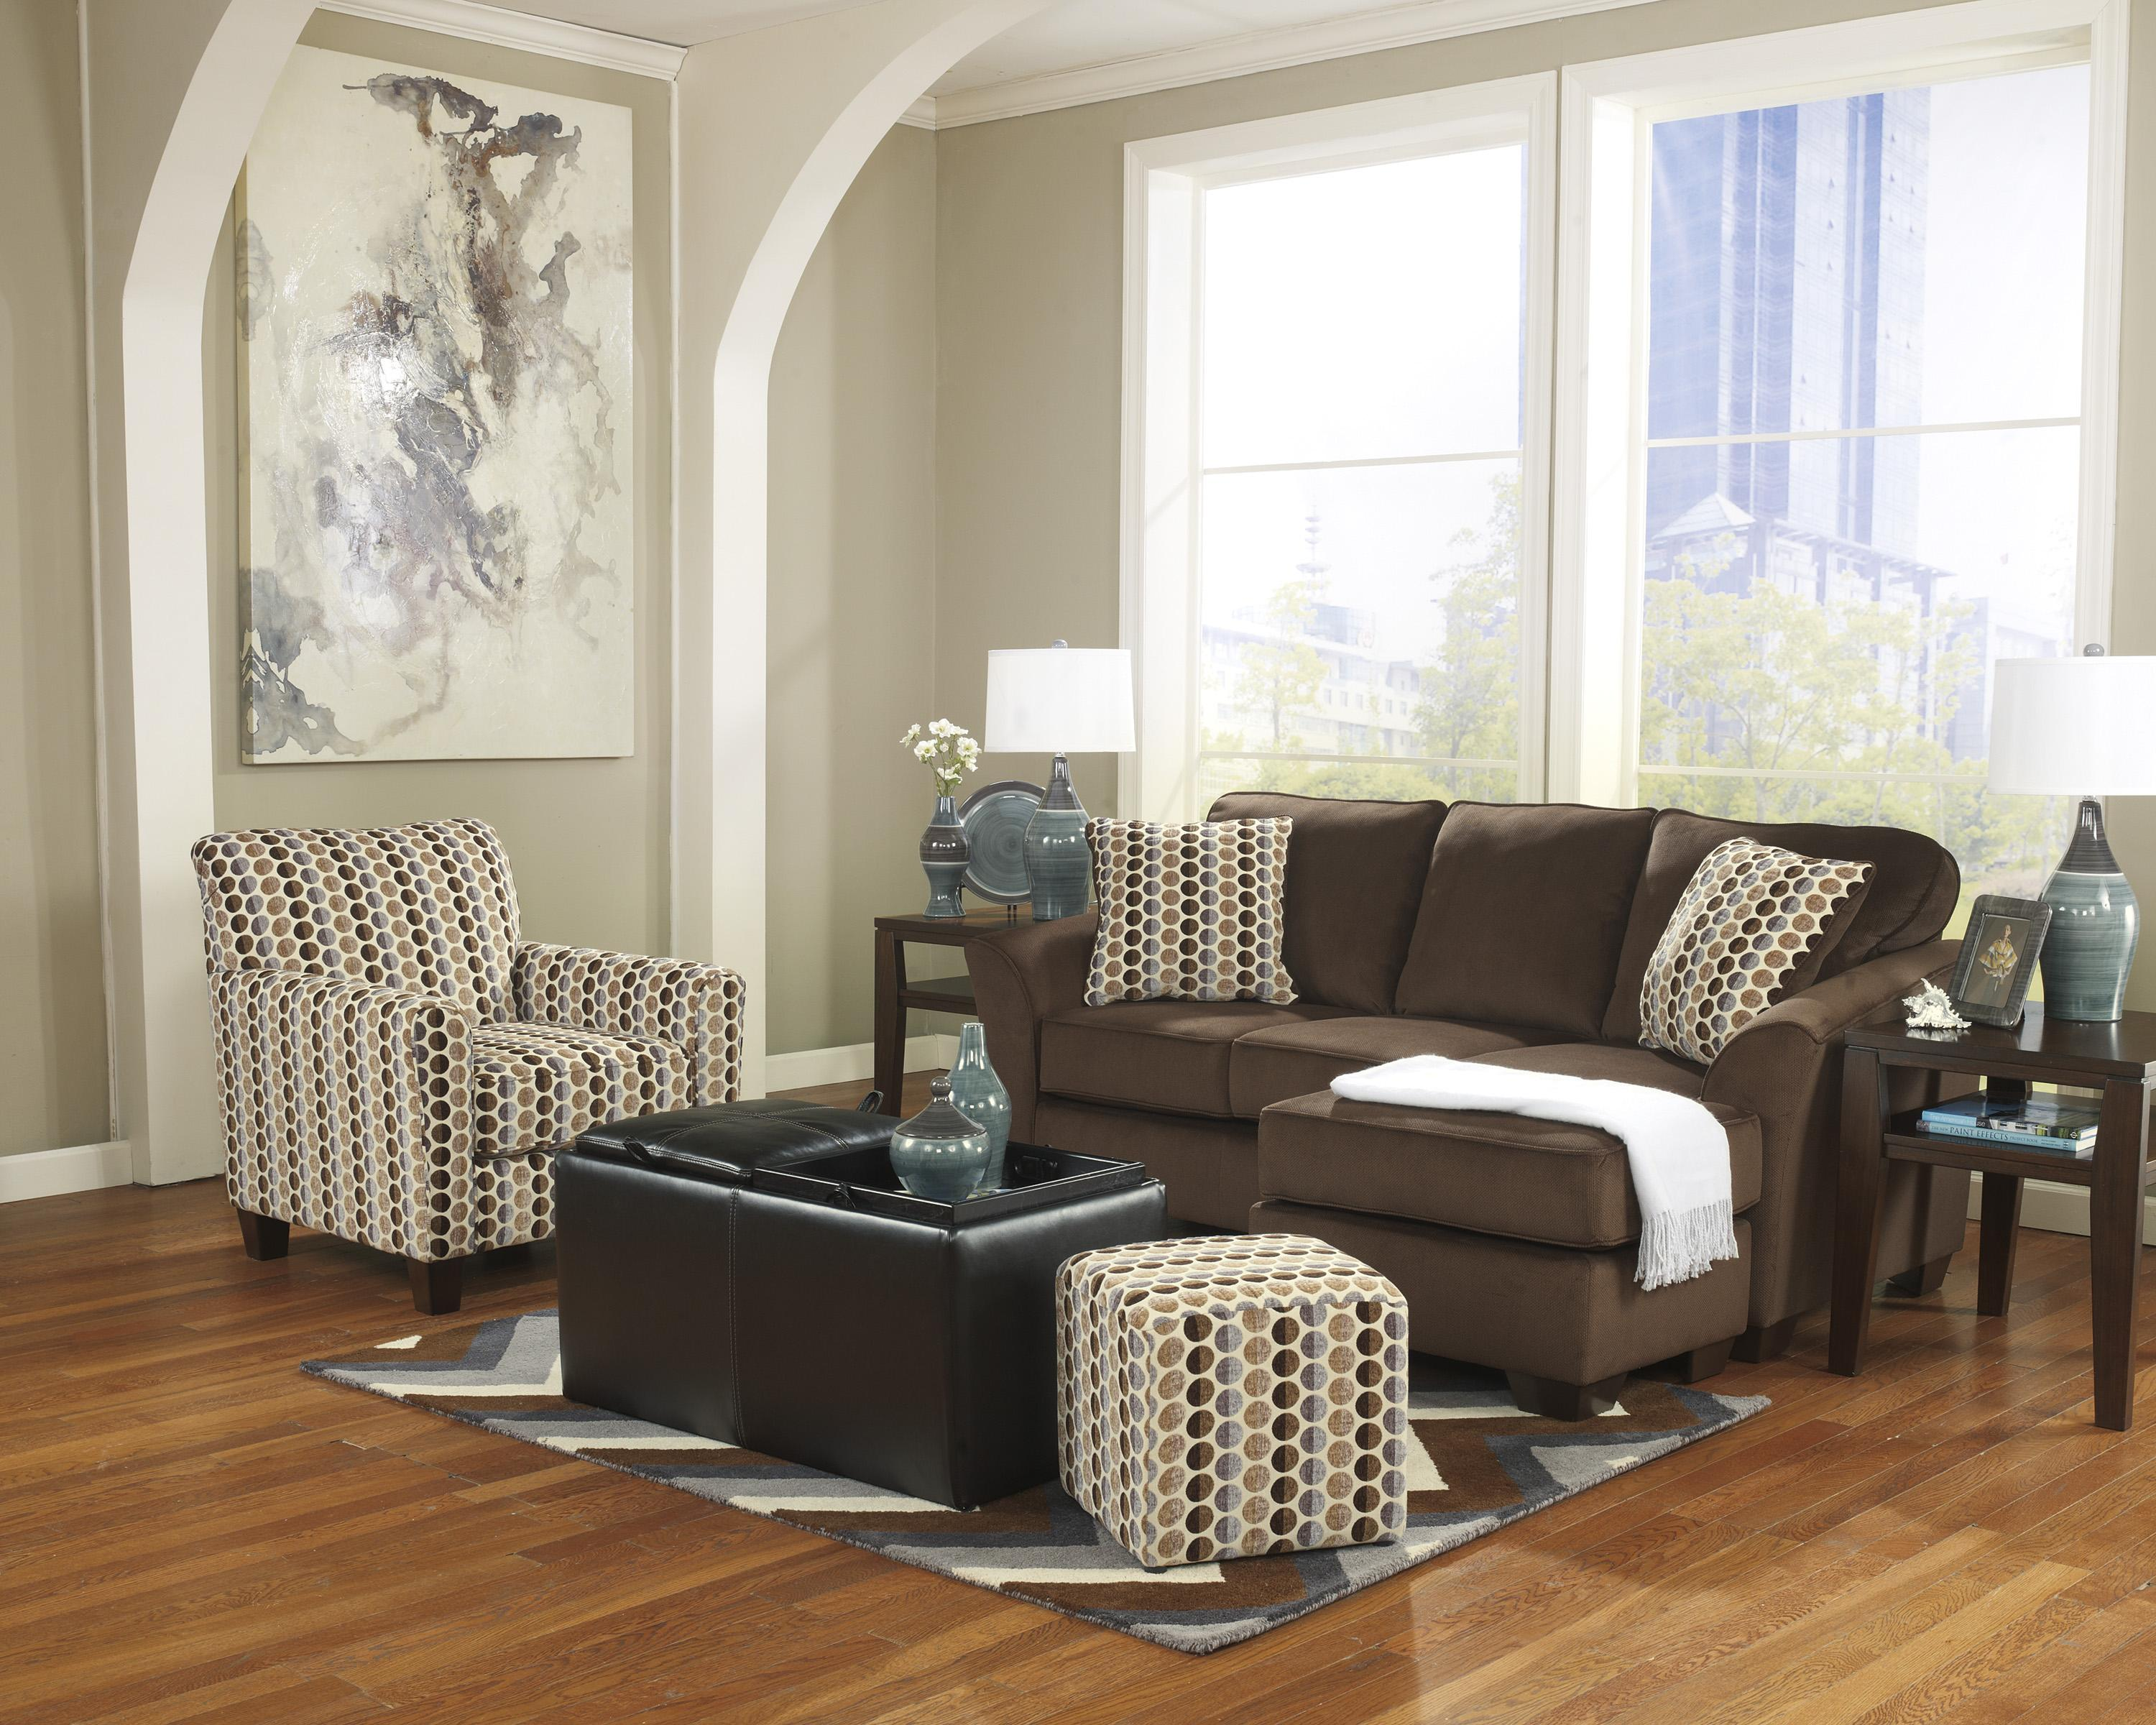 Ashley Furniture Geordie - Cafe Stationary Living Room Group - Item Number: 23500 Living Room Group 3